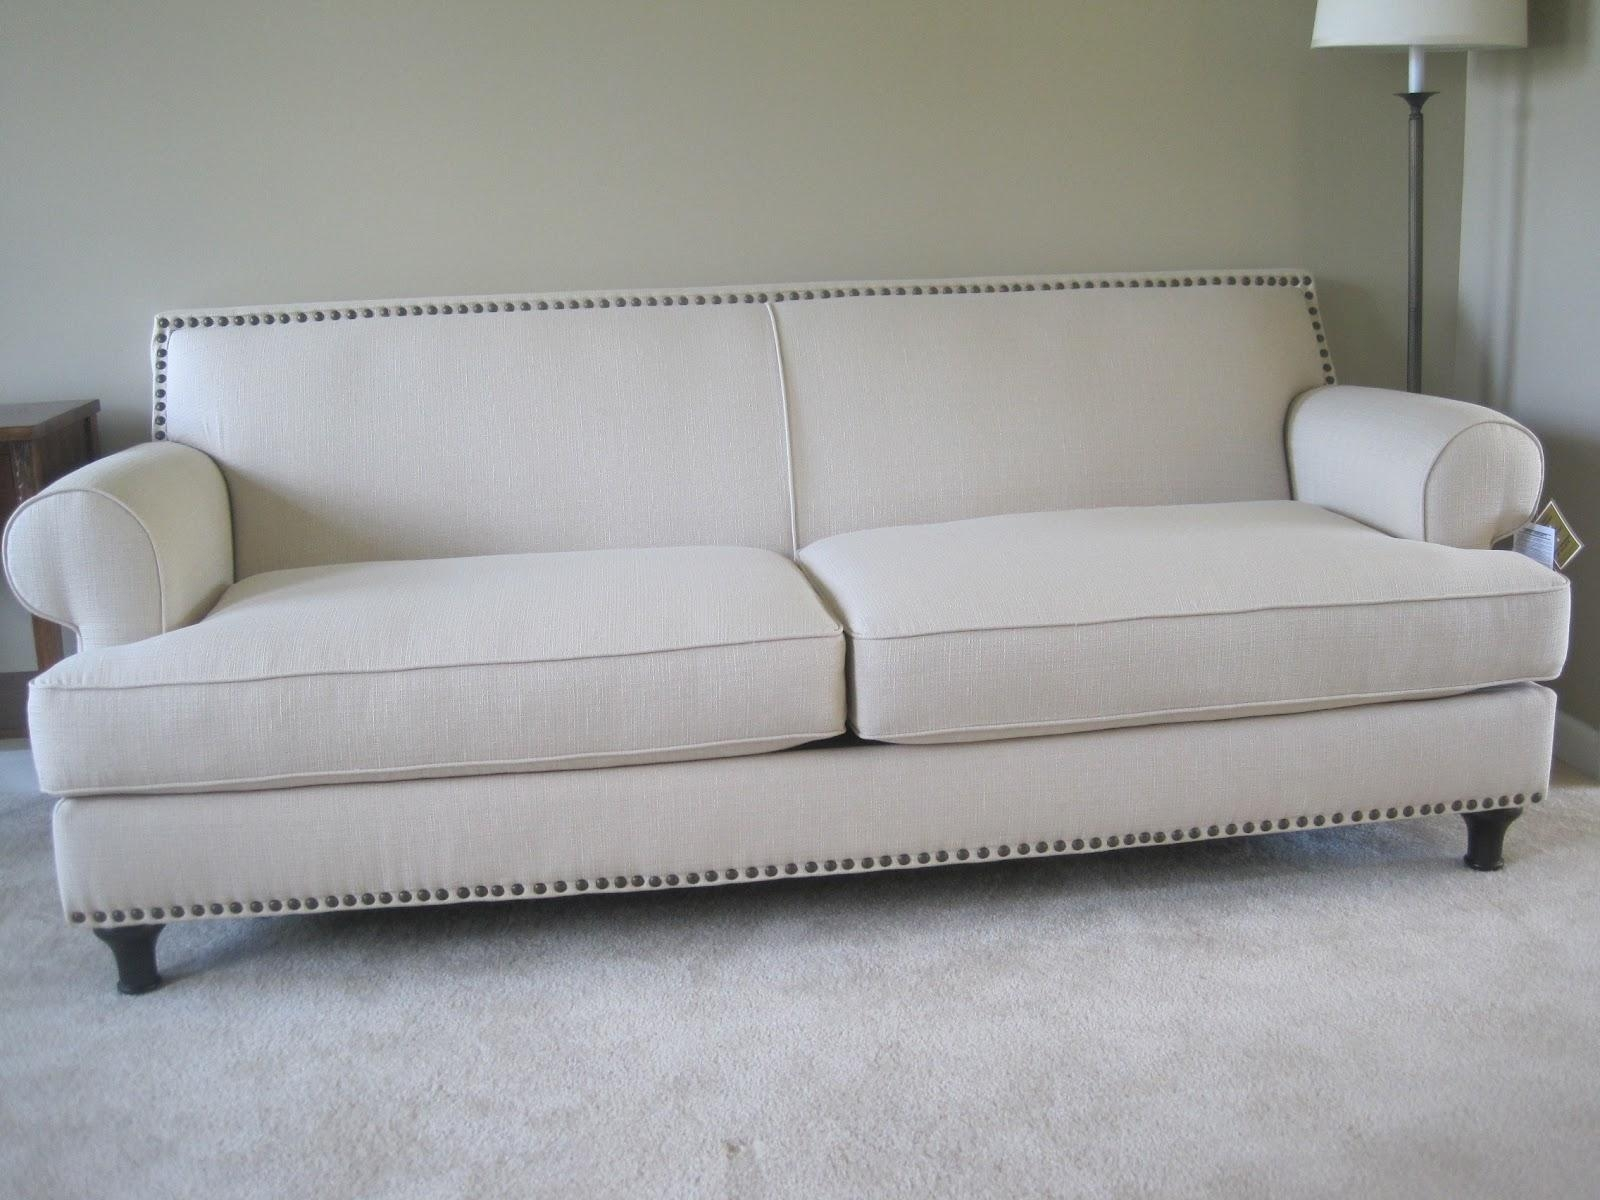 Designed To Dwell: So Fa Ortunate! In Pier One Carmen Sofas (View 2 of 20)